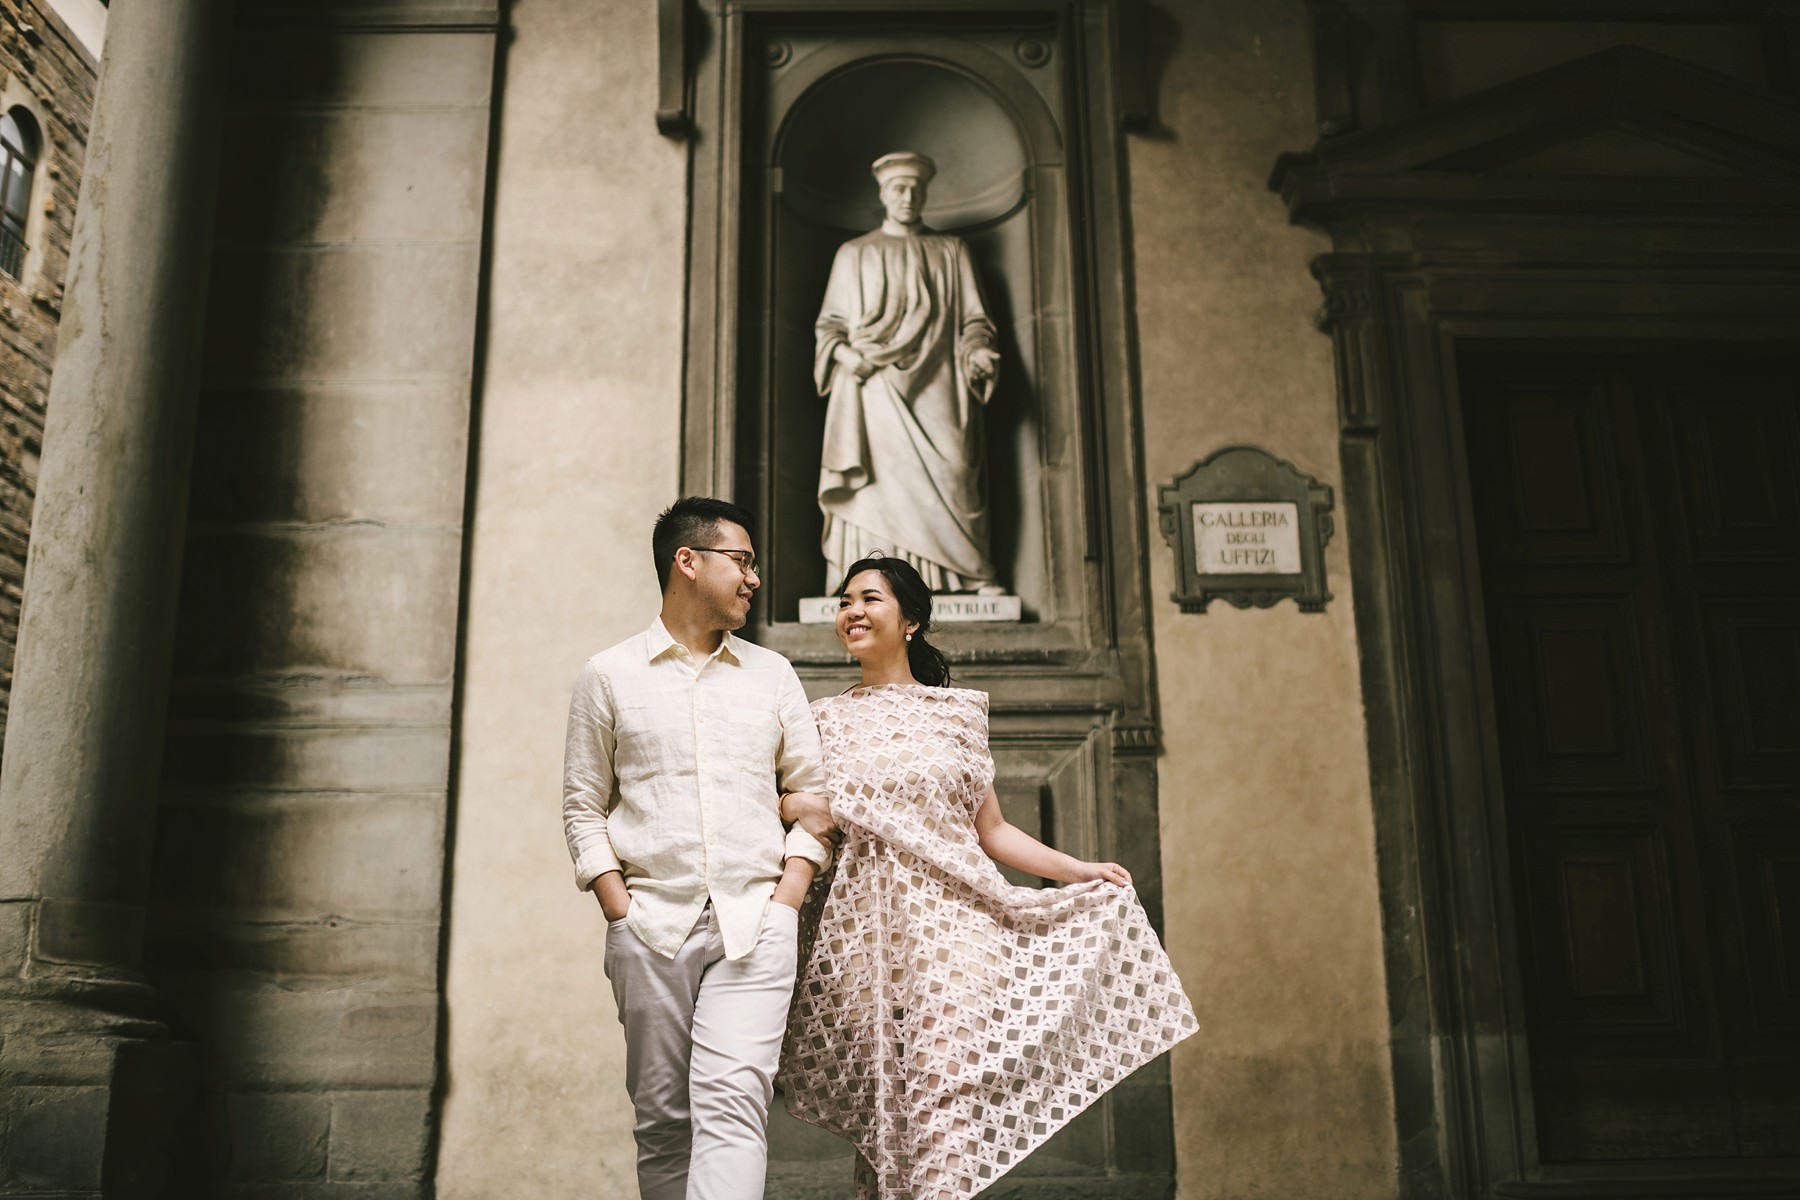 Romantic and exciting Florence couple portrait walk tour photo session near Palazzo Vecchio and Piazza della Signoria